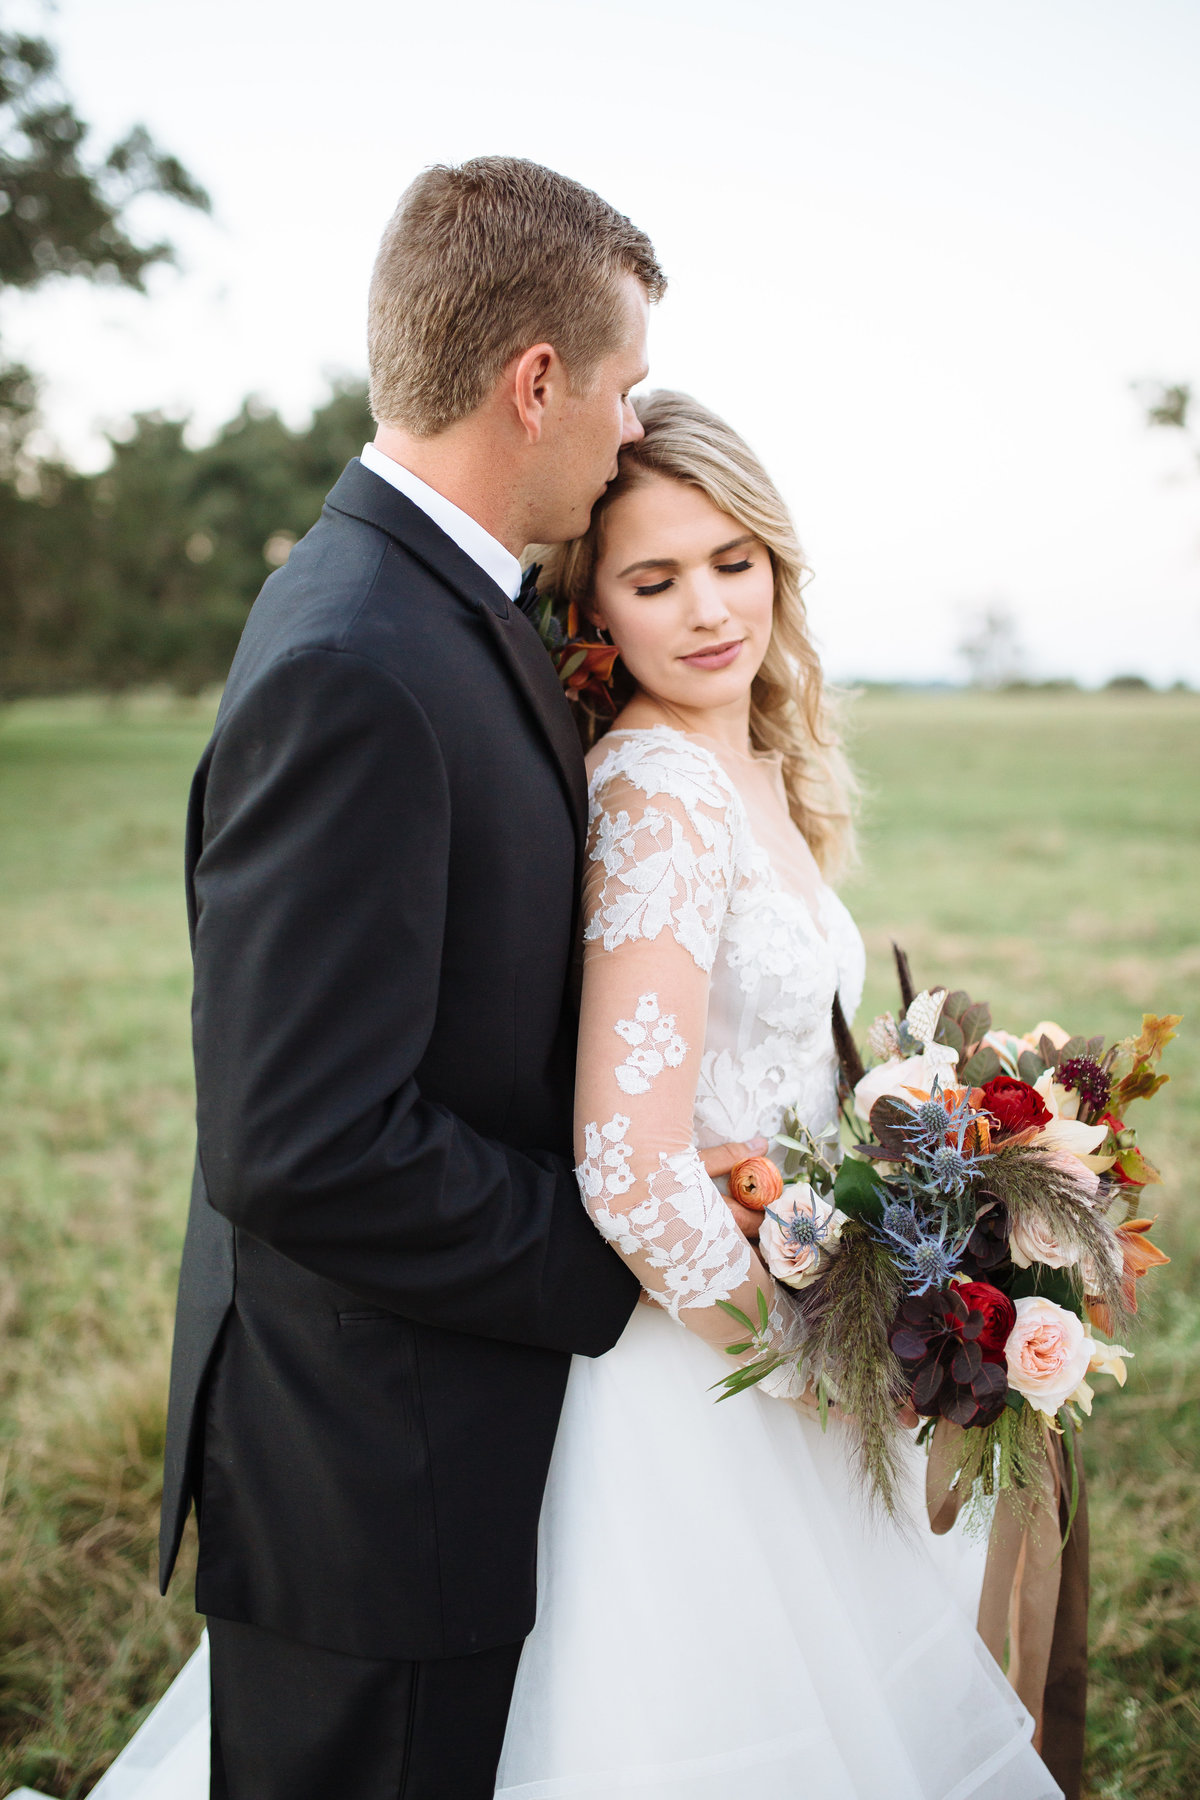 miss hayley paige wedding dress worn by a houston bride at a destination wedding photographed by smith housep hoto